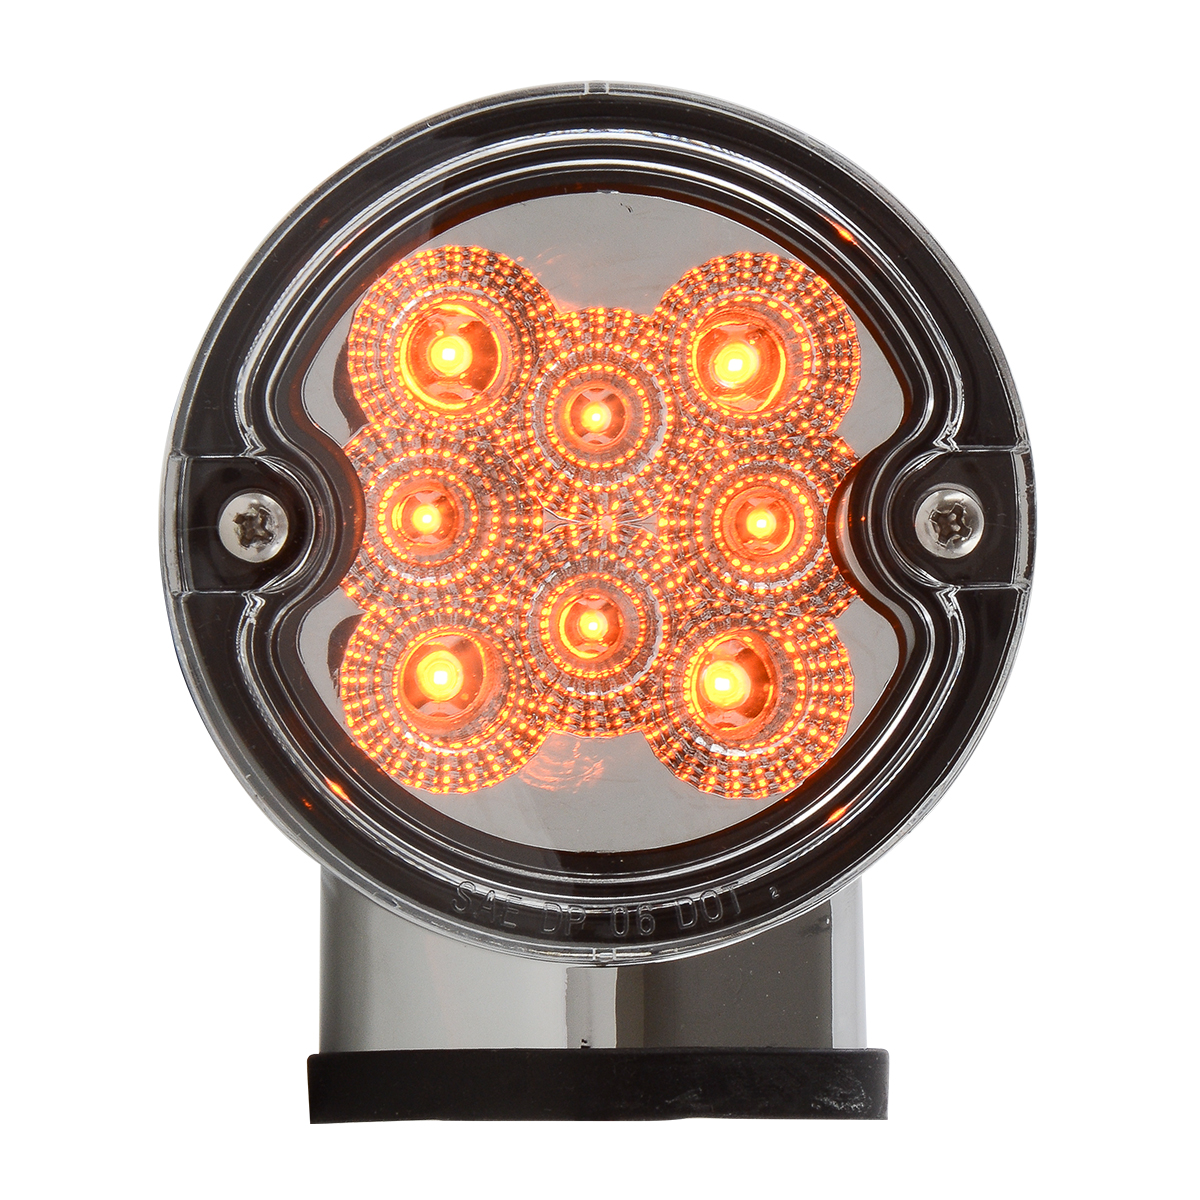 77251 Single Face Projected Spyder LED Pedestal Light